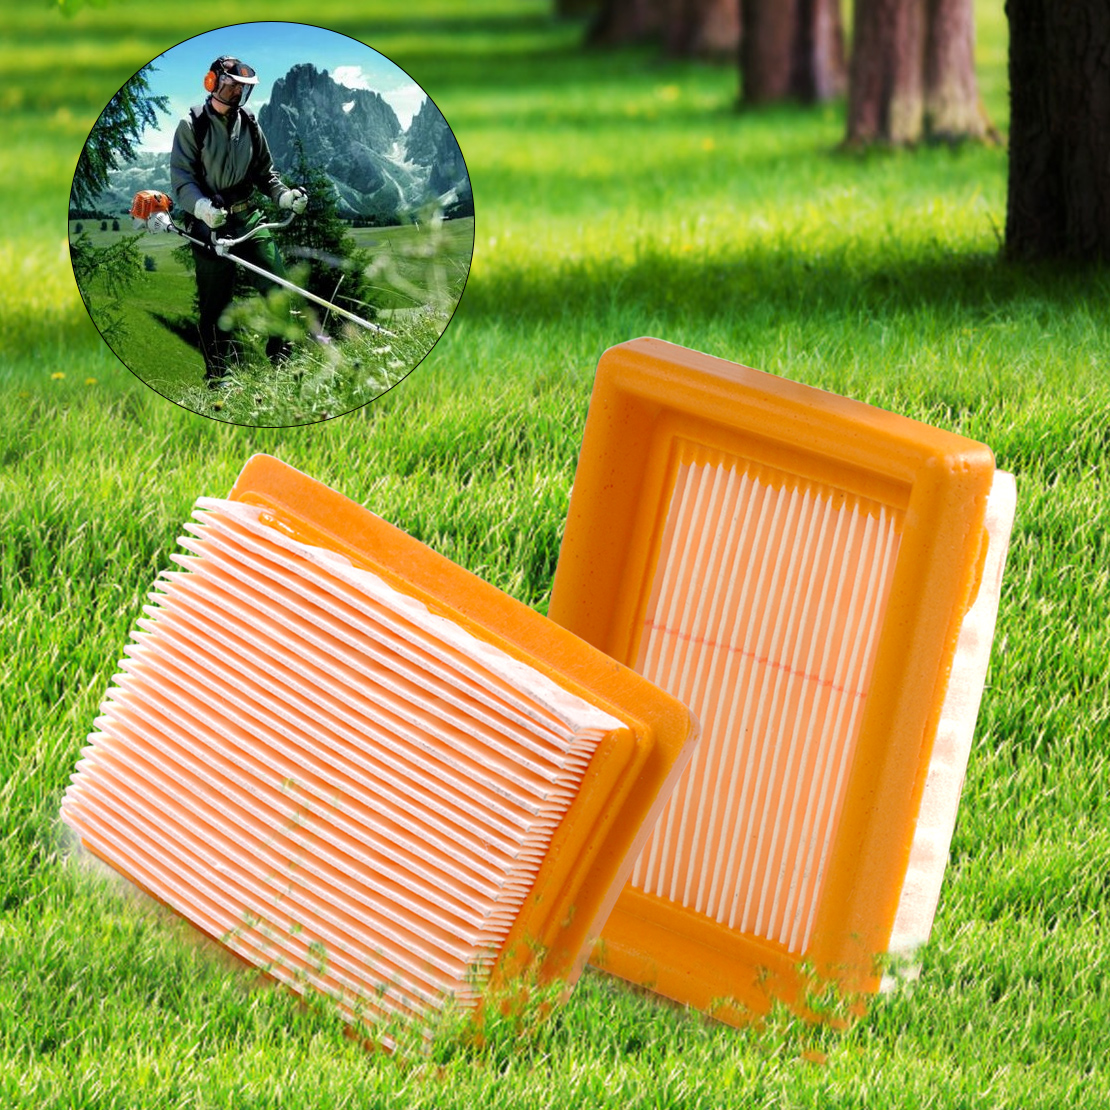 LETAOSK New Air Filter Replacement For STIHL Trimmer FS120 FS200 FS250 FS300 FS350 MM55